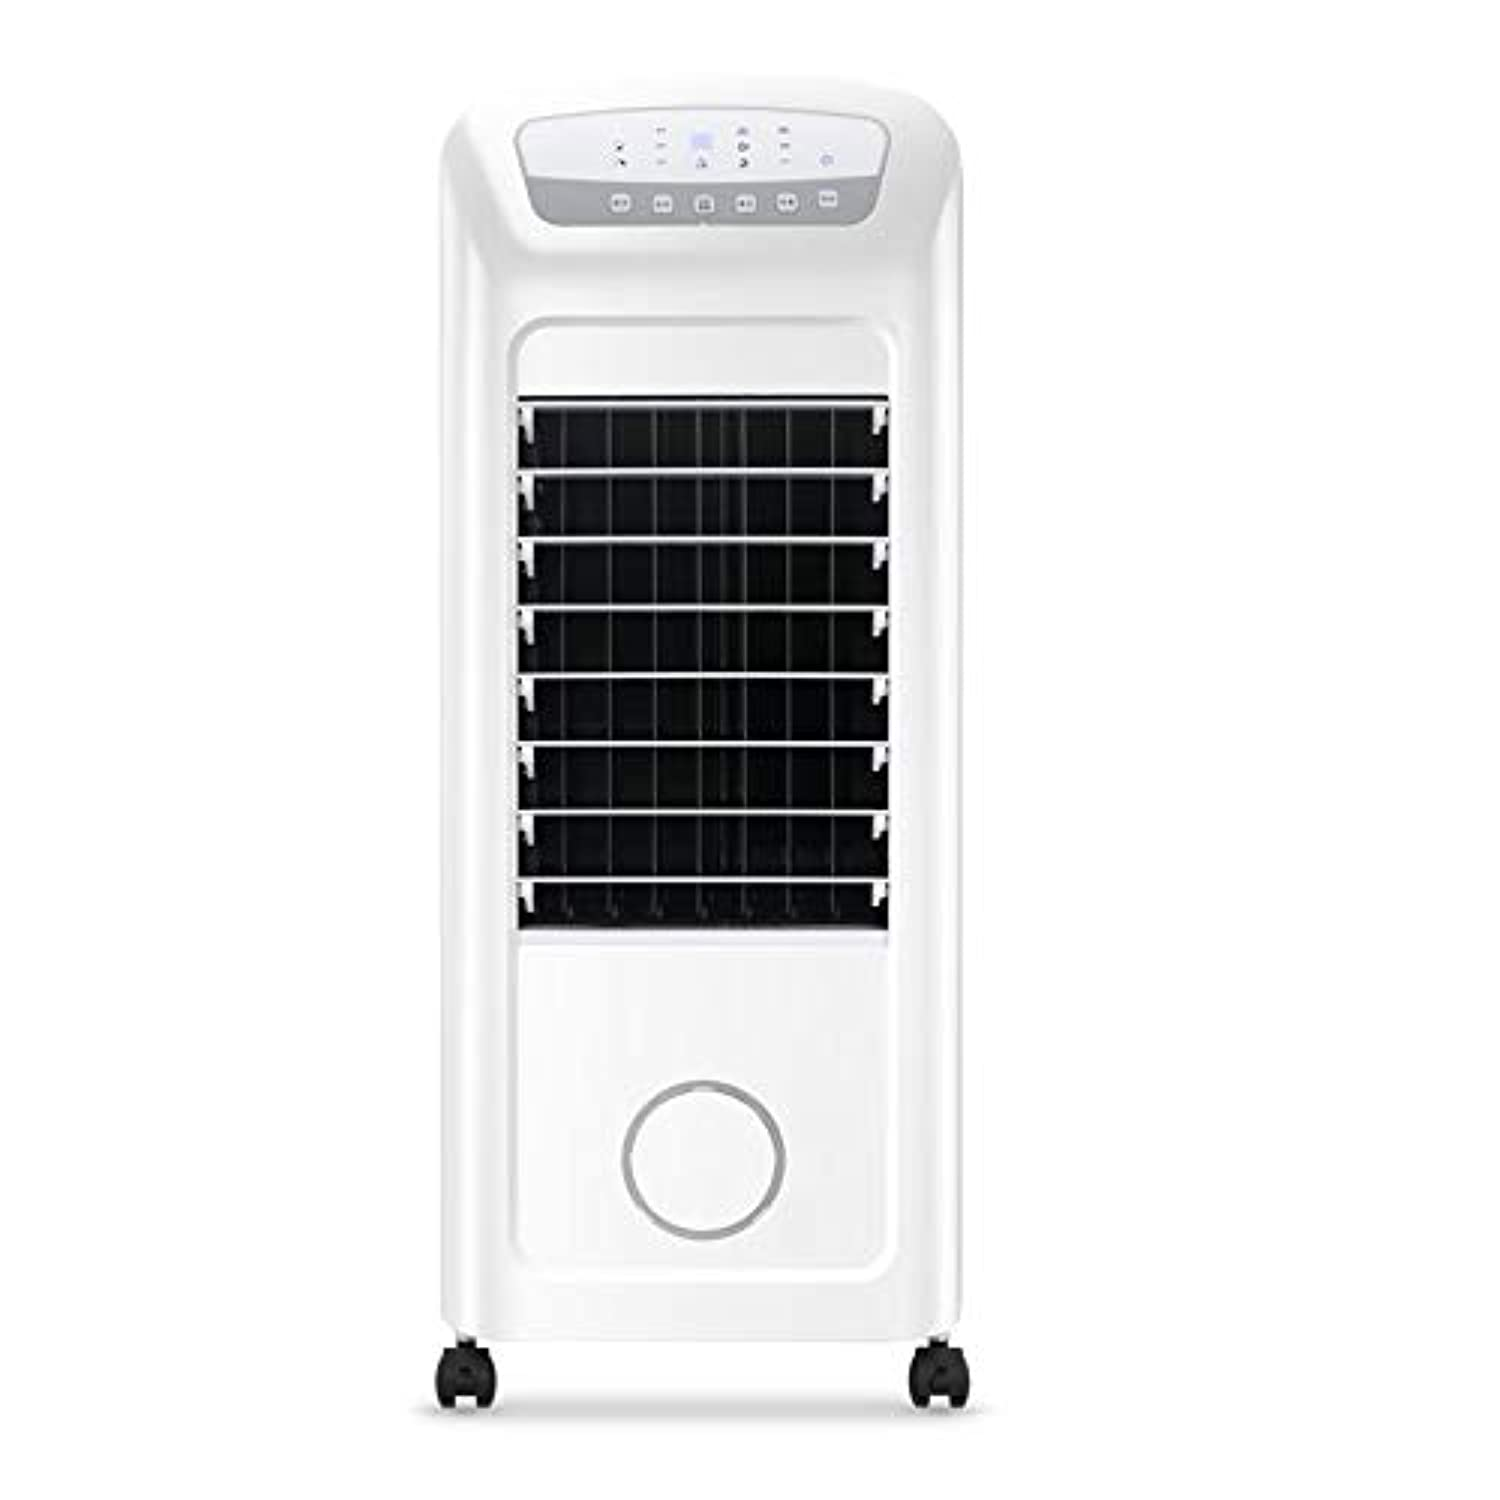 MEIDUO 空調?季節家電 クーラーファン3-IN-1蒸発型エアークーラー3 60°振動60W 扇風機